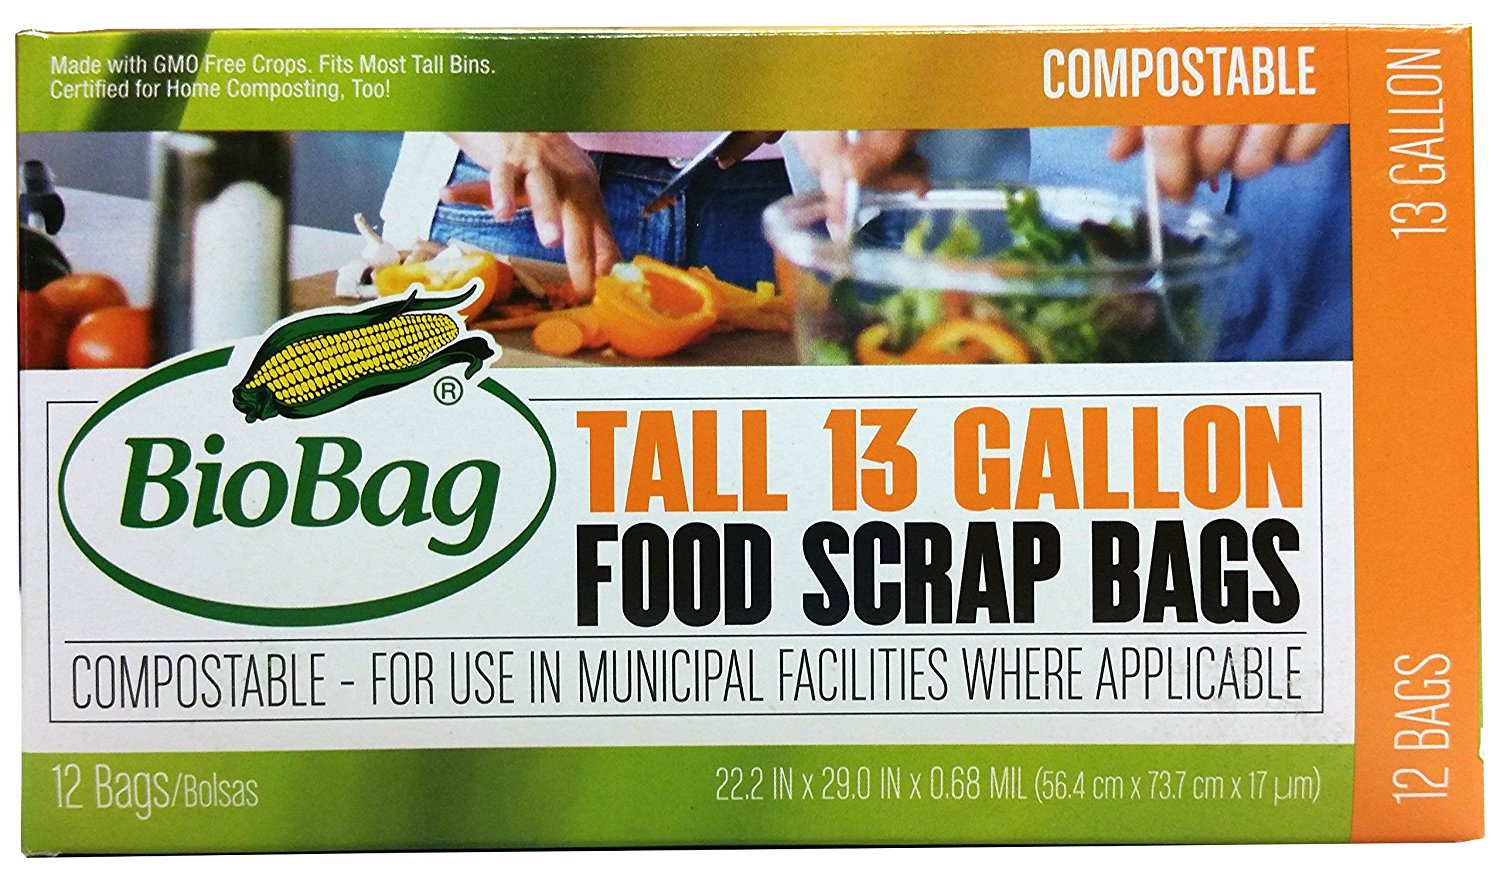 BioBag, The Original Compostable Bag, Kitchen Food Scrap Bags, ASTMD6400 Certified 100% Compostable Bags, Biodegradable Products Institute & VINCOTTE OK HOME Certified, Non GMO, 13 Gallon, 144 Count